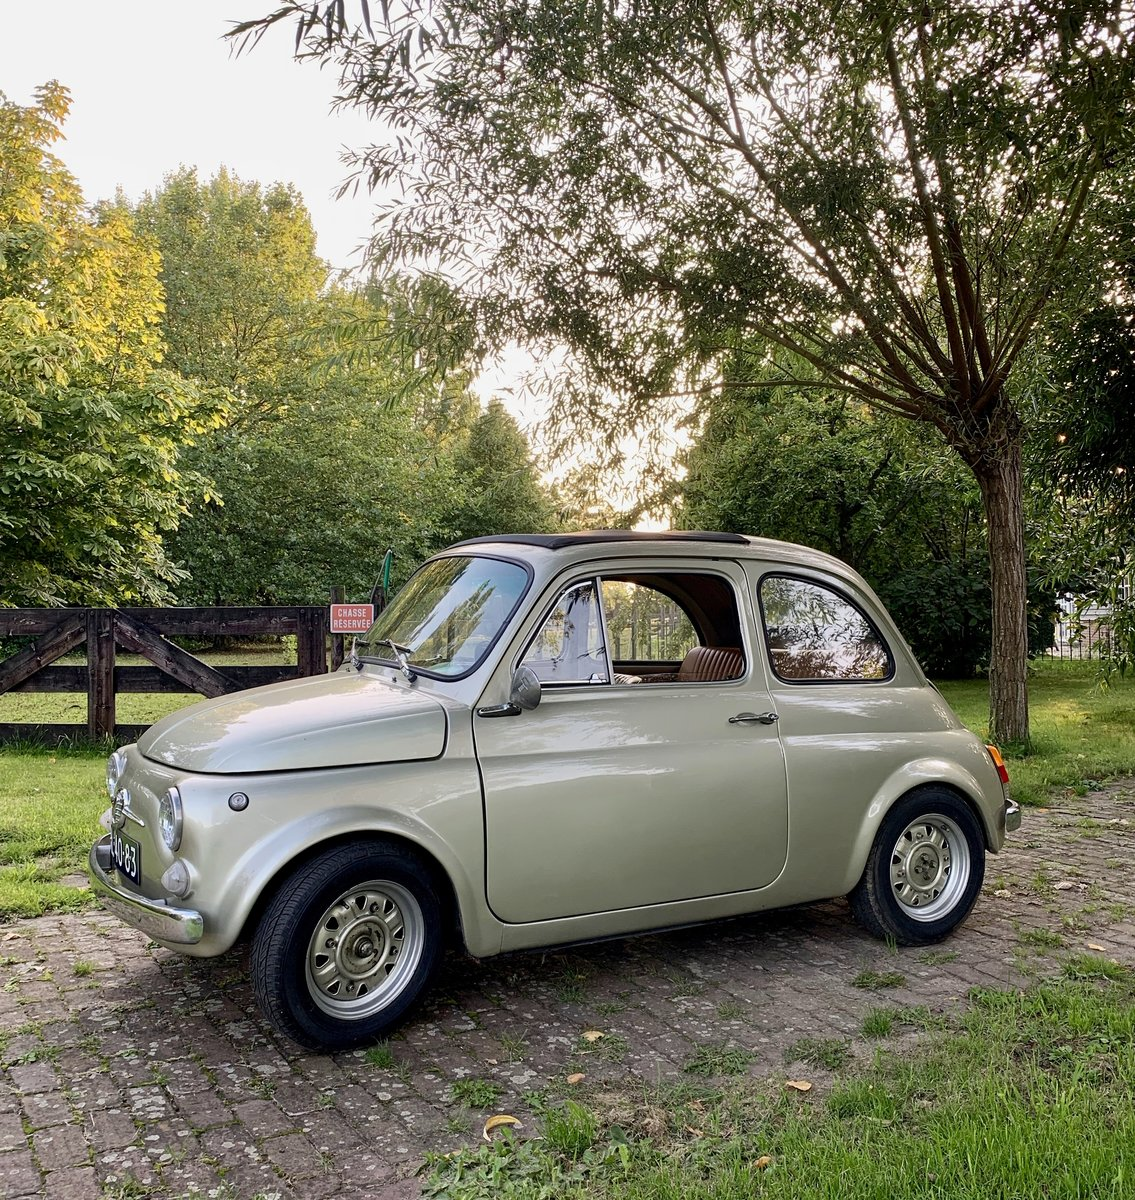 1970 Fiat 500L - Olive Green For Sale (picture 1 of 5)